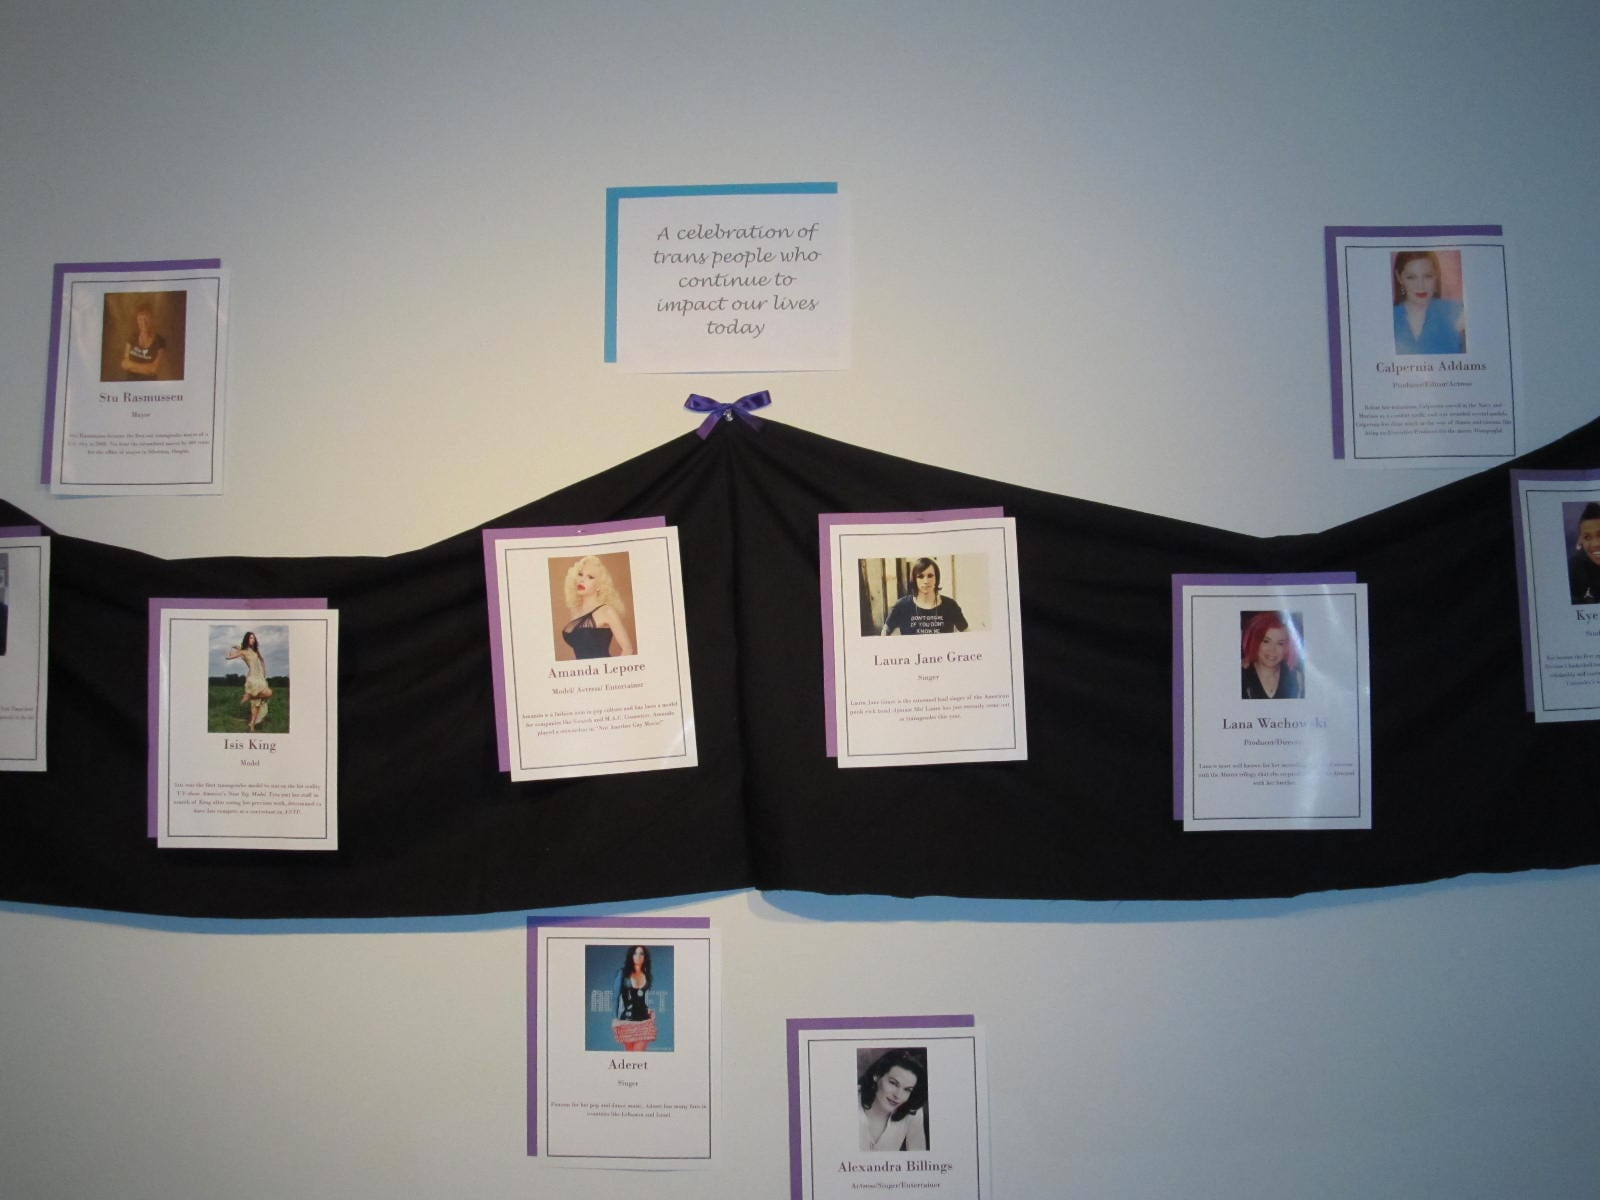 SBU's CPO and LGBTA held a memorial in honor of transgenders on Thursday, Nov. 29.